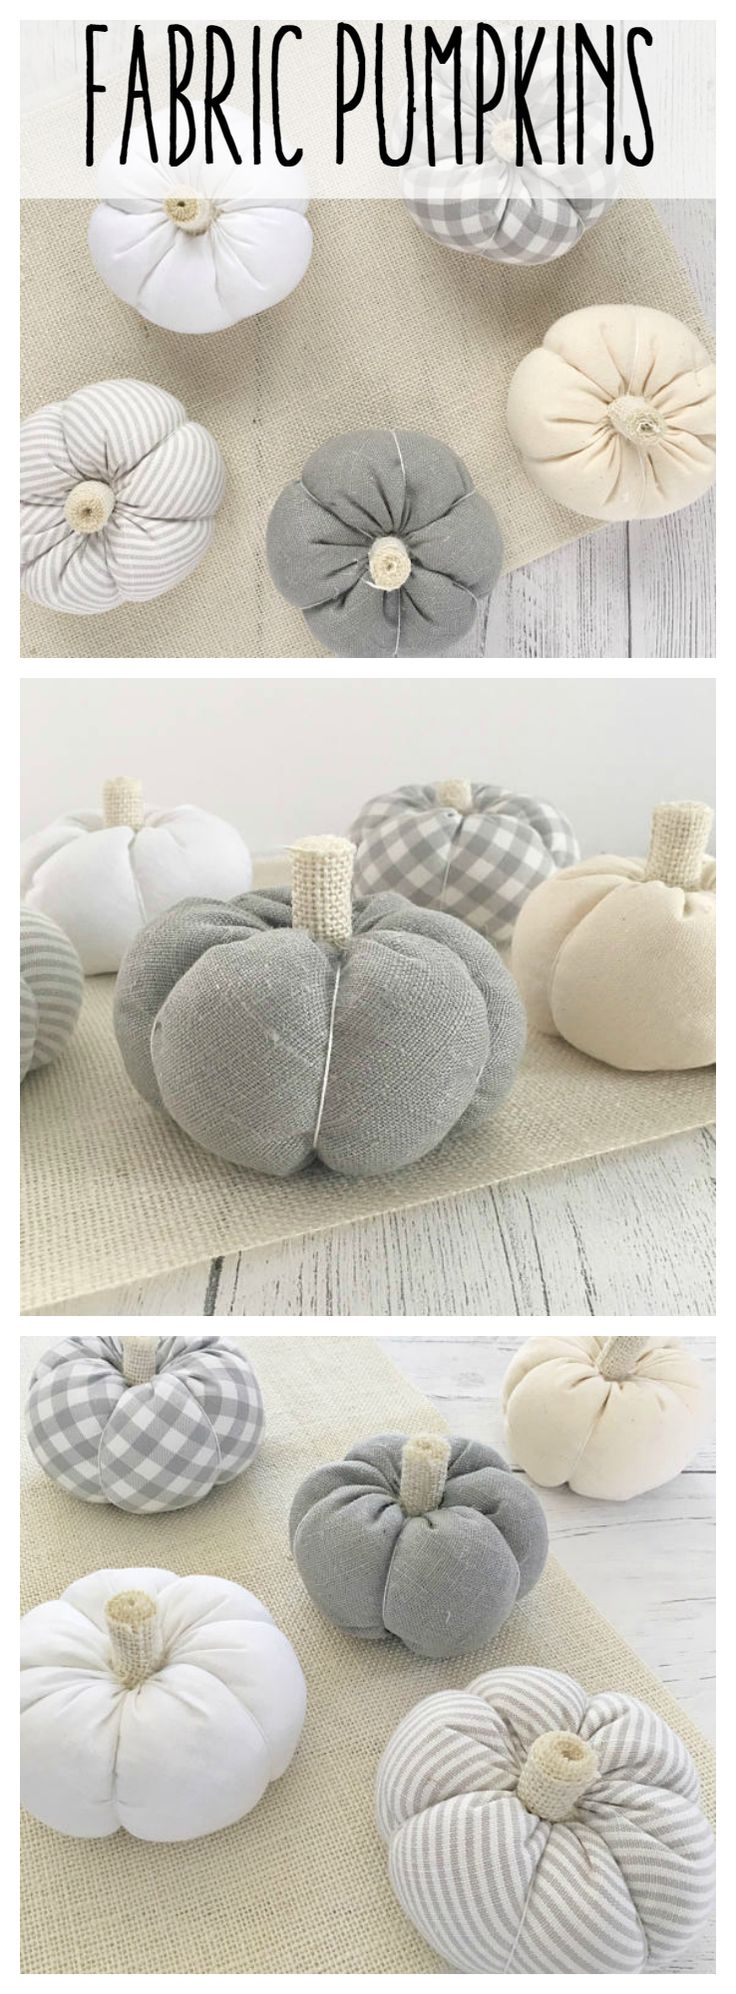 Fall pumpkin table decor. Perfect center piece for your fall/autumn table! #aff